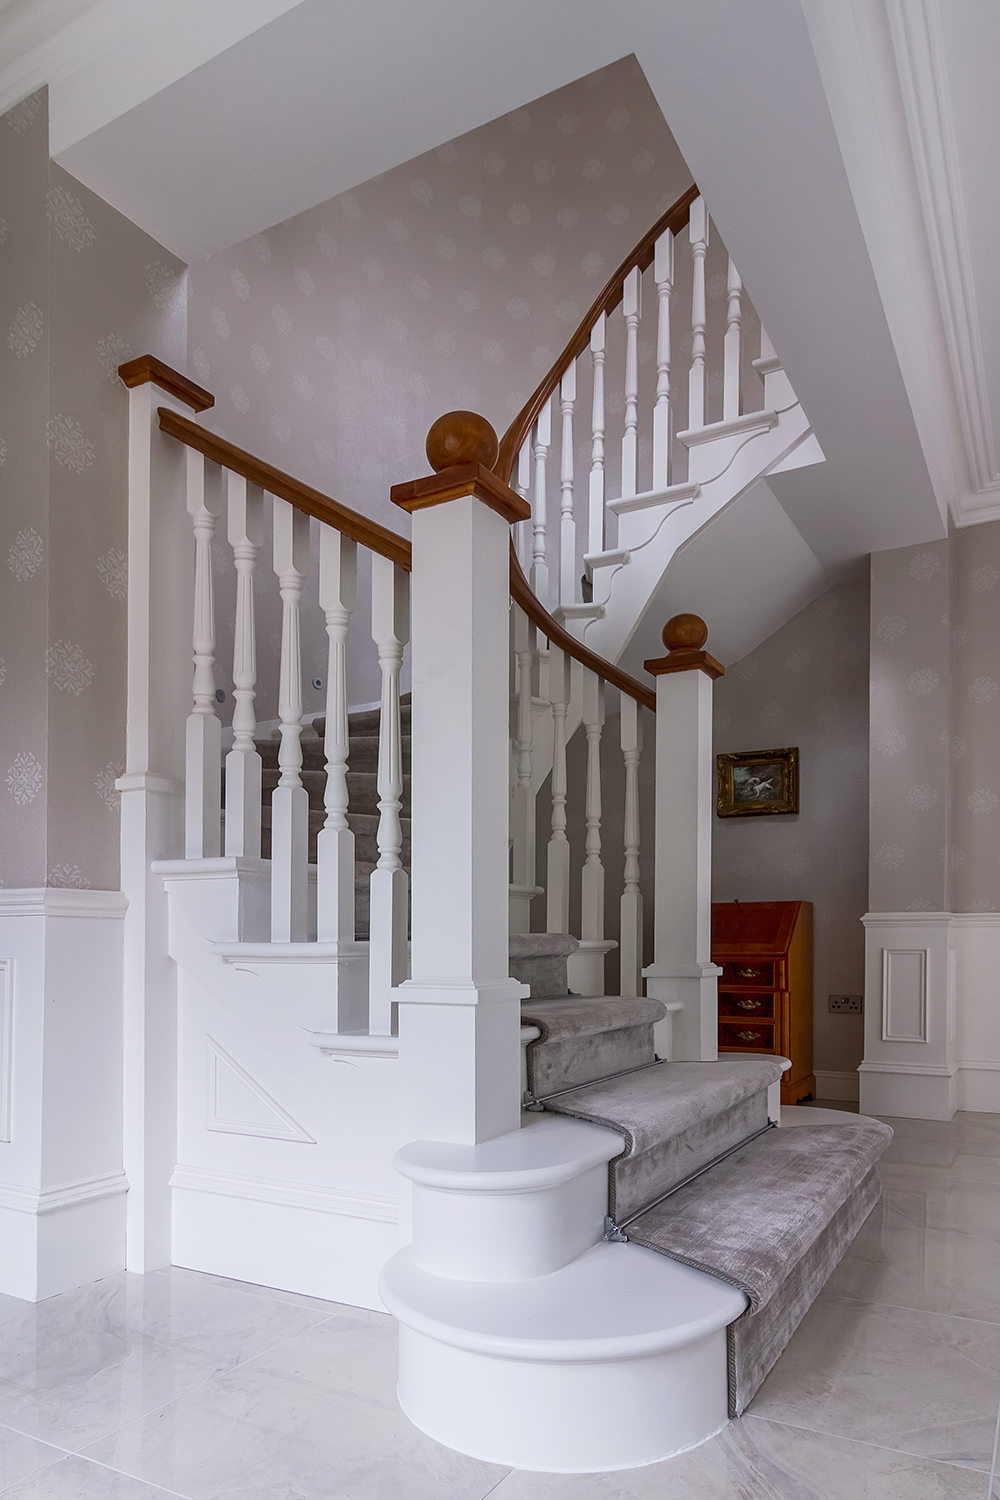 www.stockwell-ltd.co.uk   Bespoke c  urved cut-stringer staircase with white oak lacquered curved handrail and newel caps  . This stair is highly detailed with stringer capes, curved scotia beading and double curtail steps.